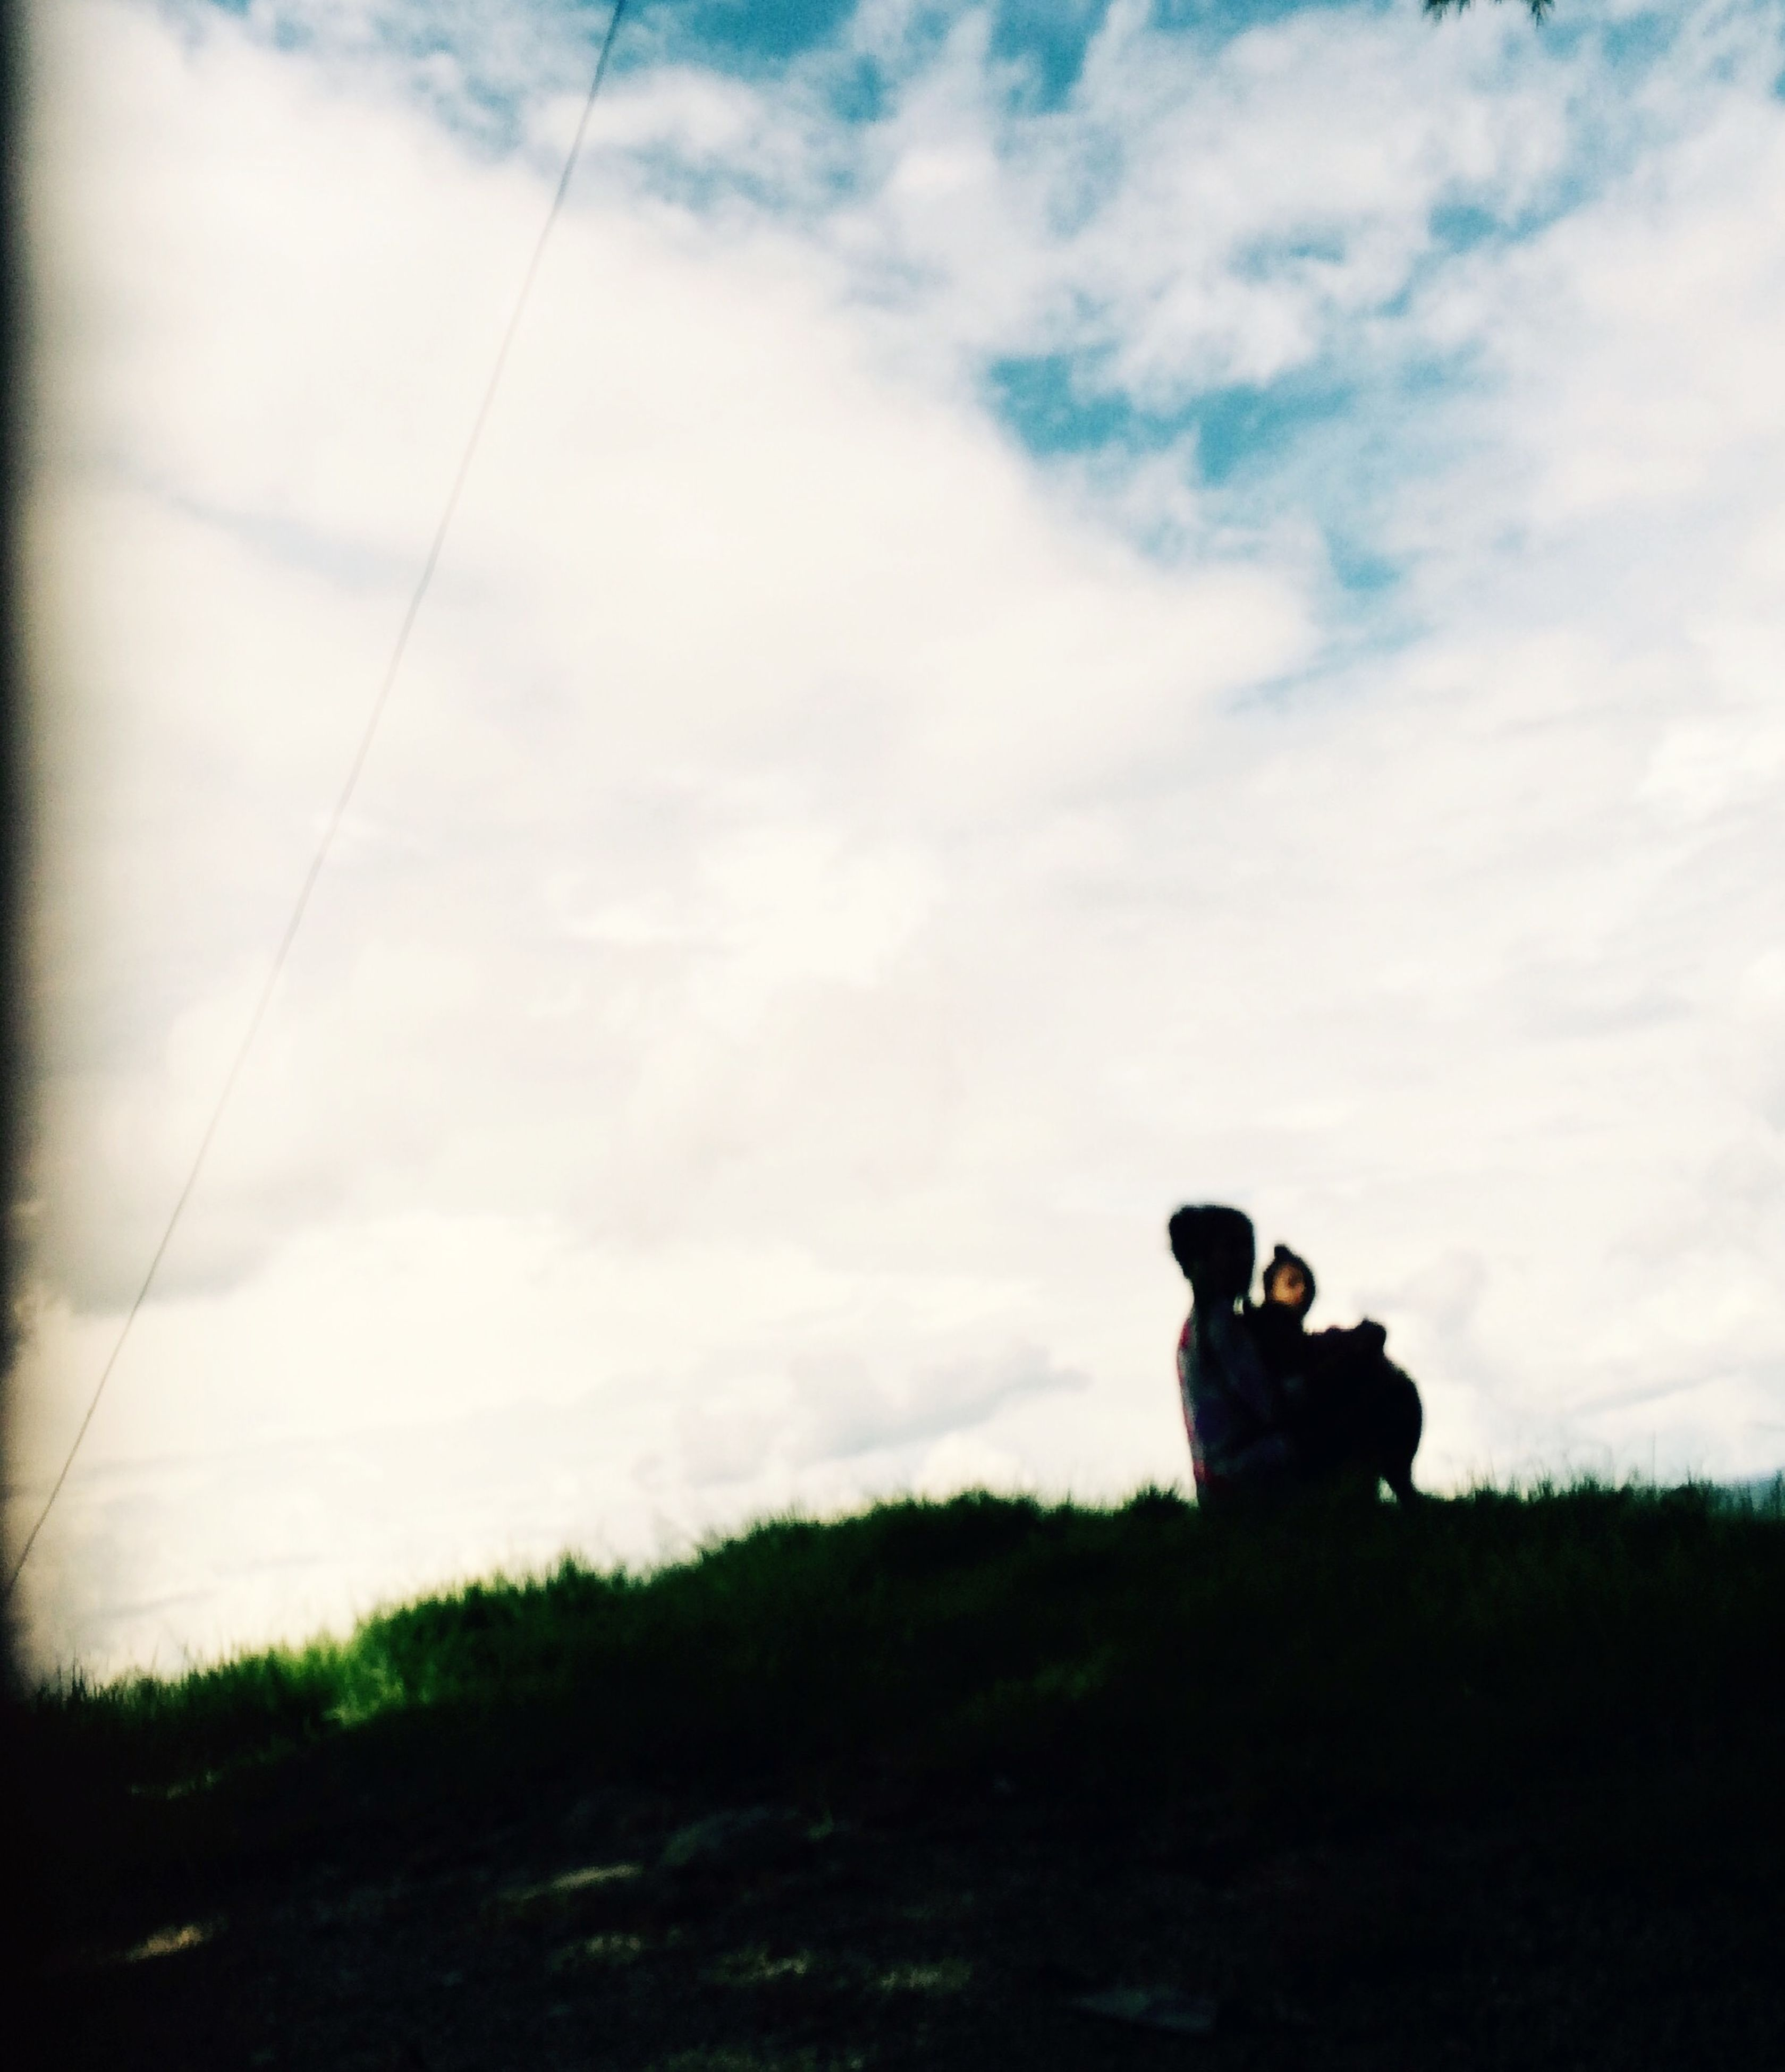 sky, lifestyles, leisure activity, men, cloud - sky, sitting, field, rear view, standing, technology, photographing, cloud, landscape, three quarter length, full length, cloudy, casual clothing, photography themes